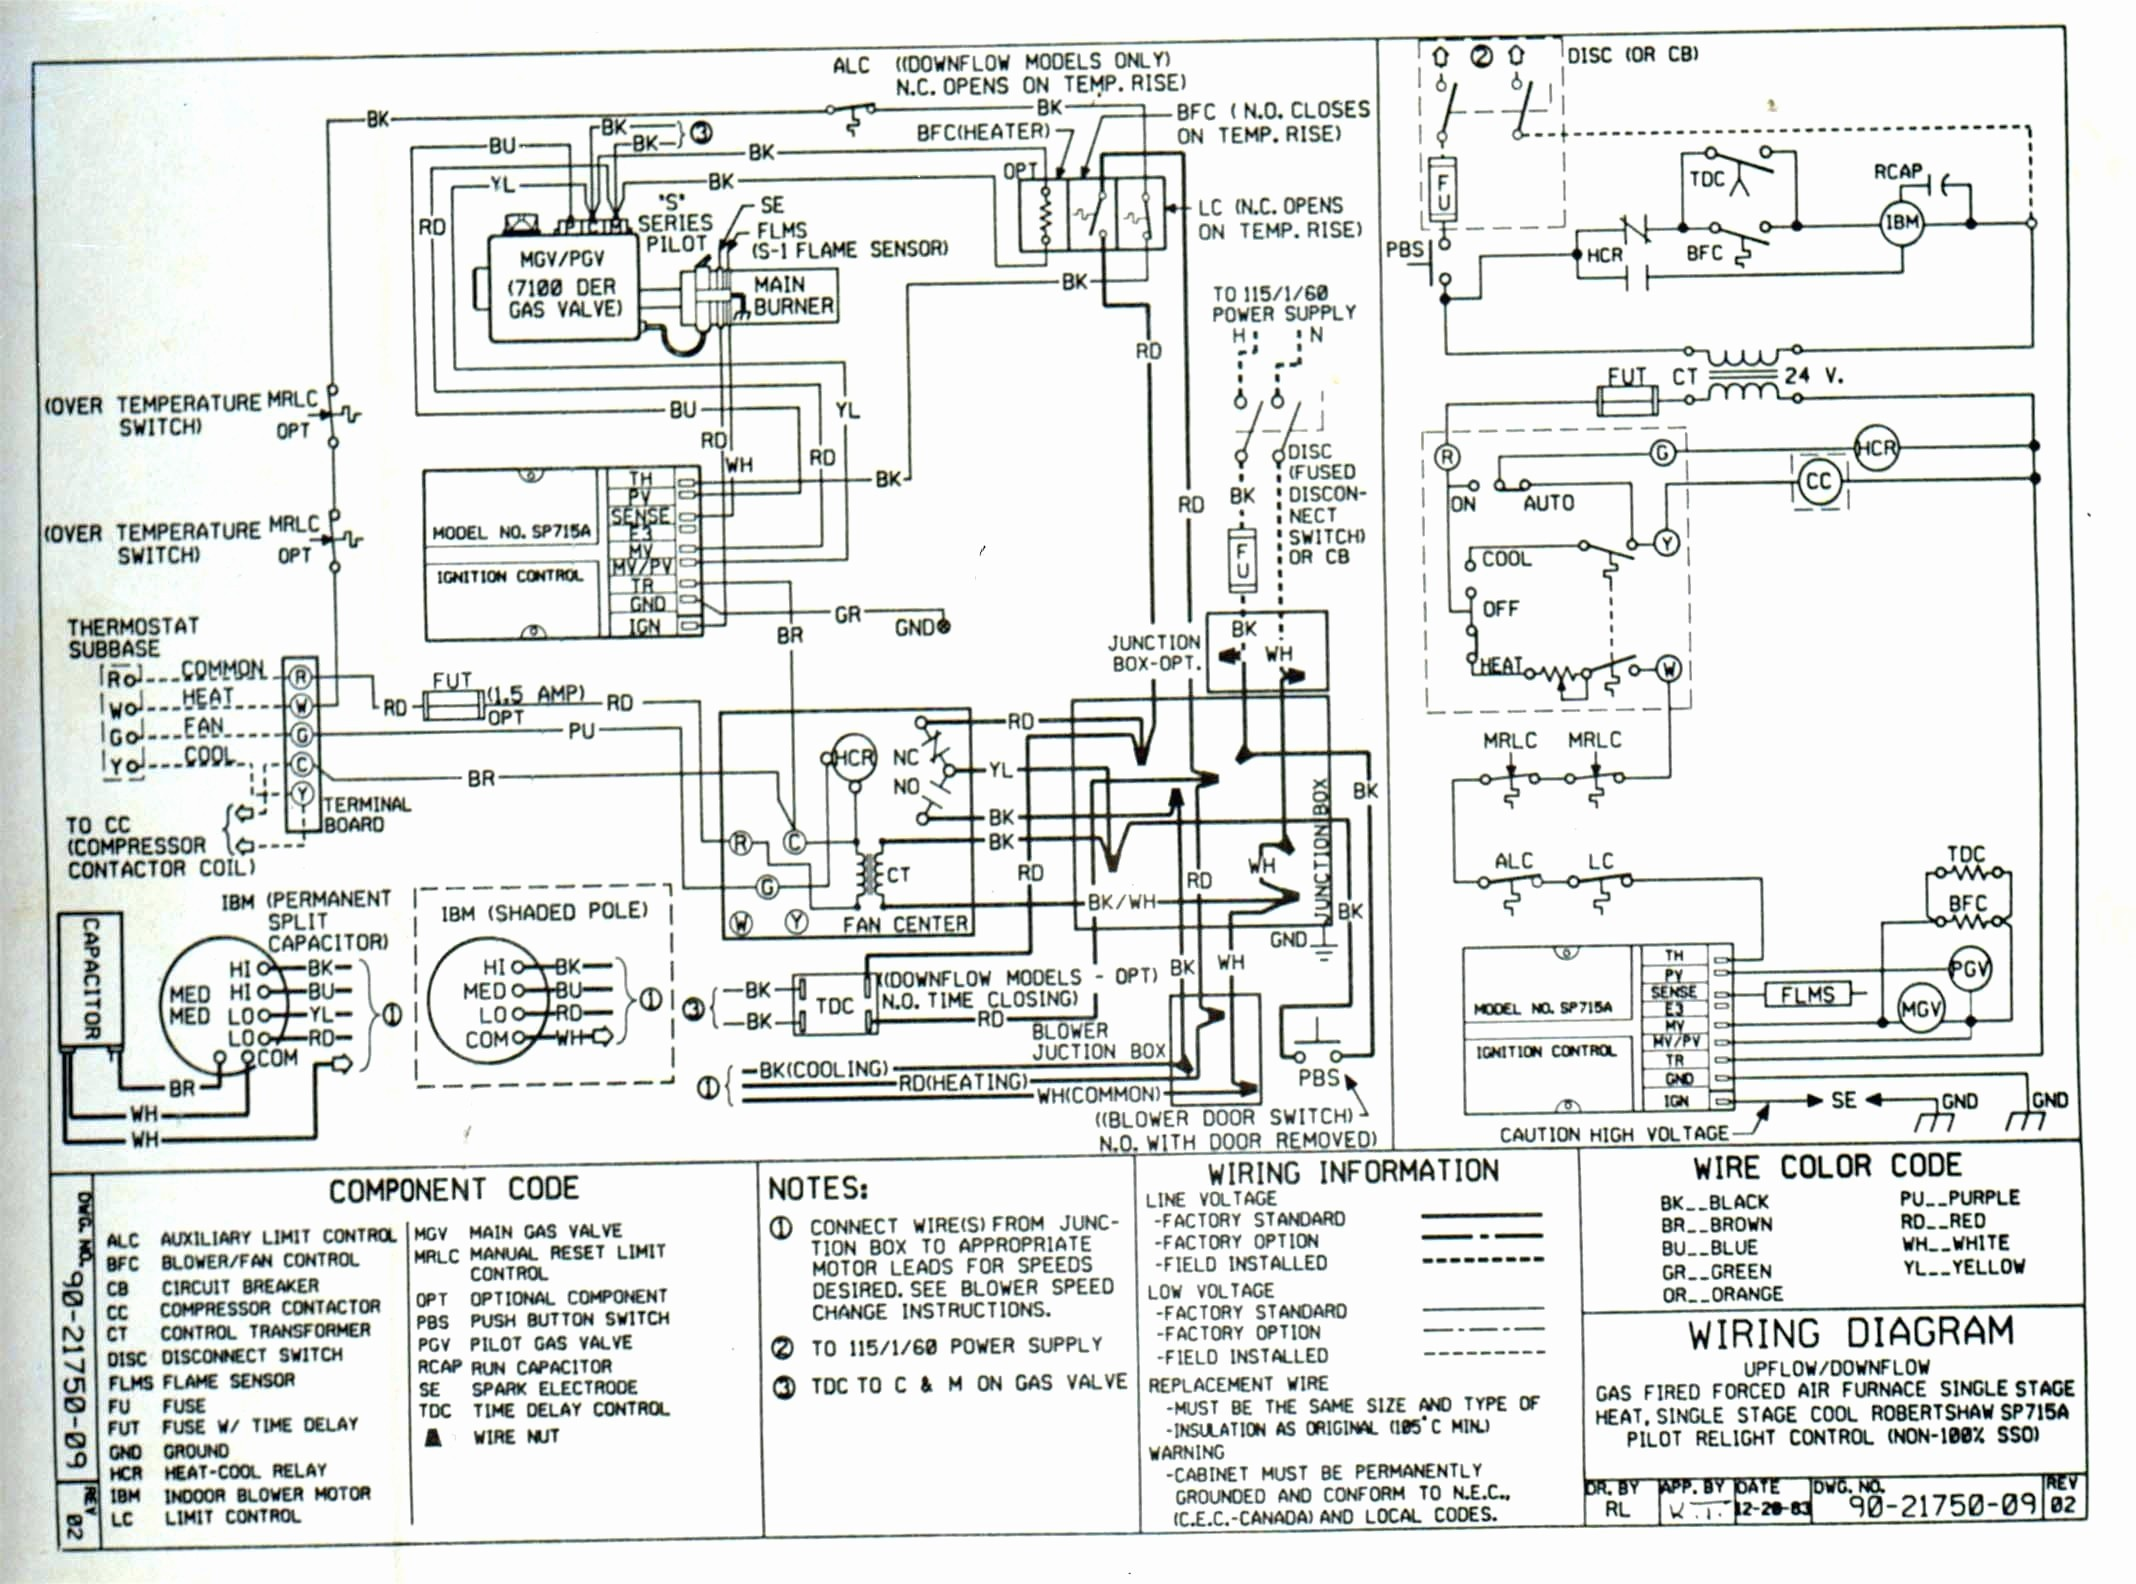 [DIAGRAM_38EU]  137 2007 International 4300 Dt466 Wiring Diagram | Wiring Resources | International Dt 466 Engines Diagrams |  | Wiring Resources